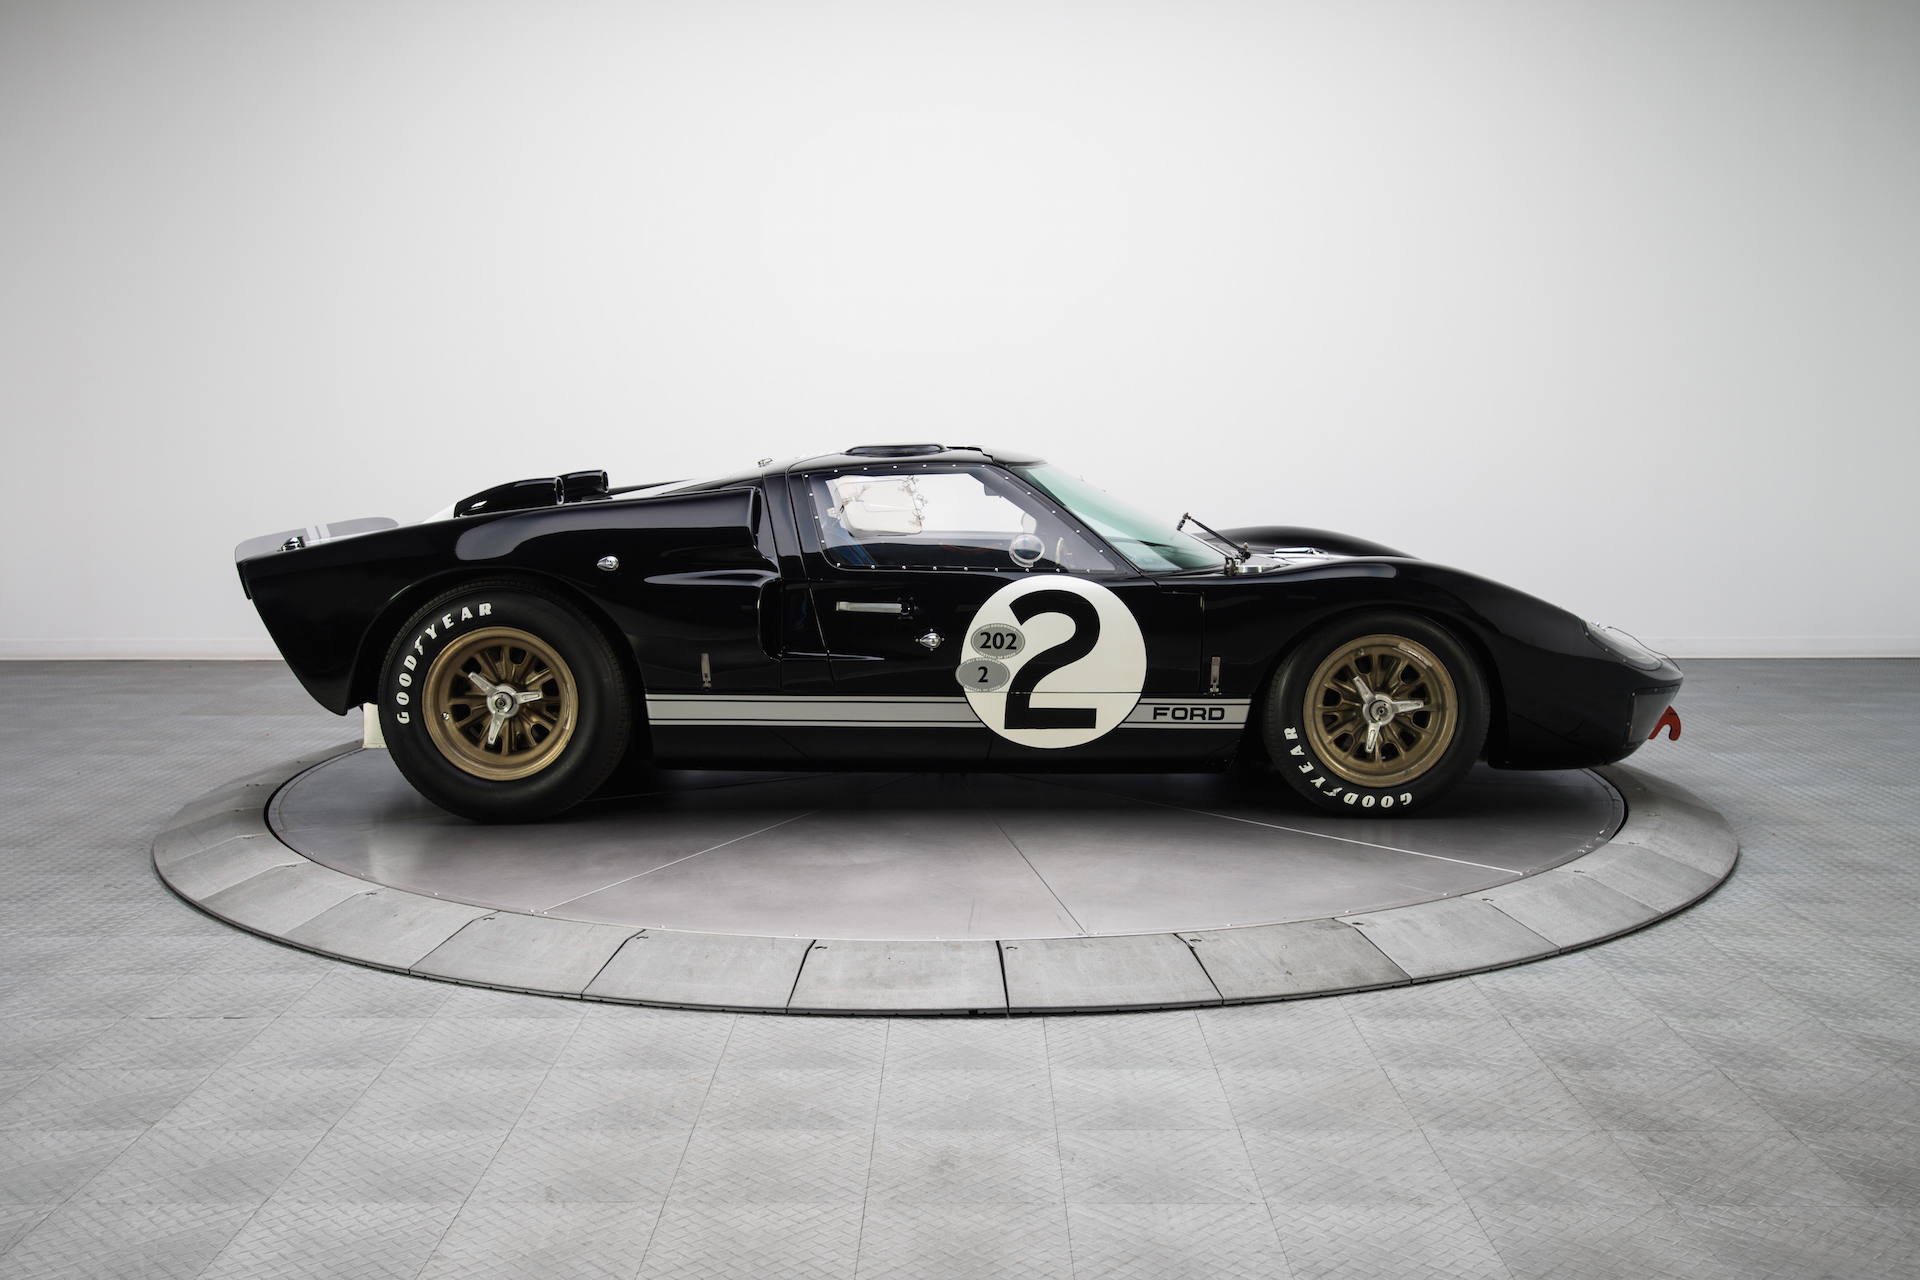 Le Mans Winning Ford Gt Restoration Video Part Four Attention To Detail